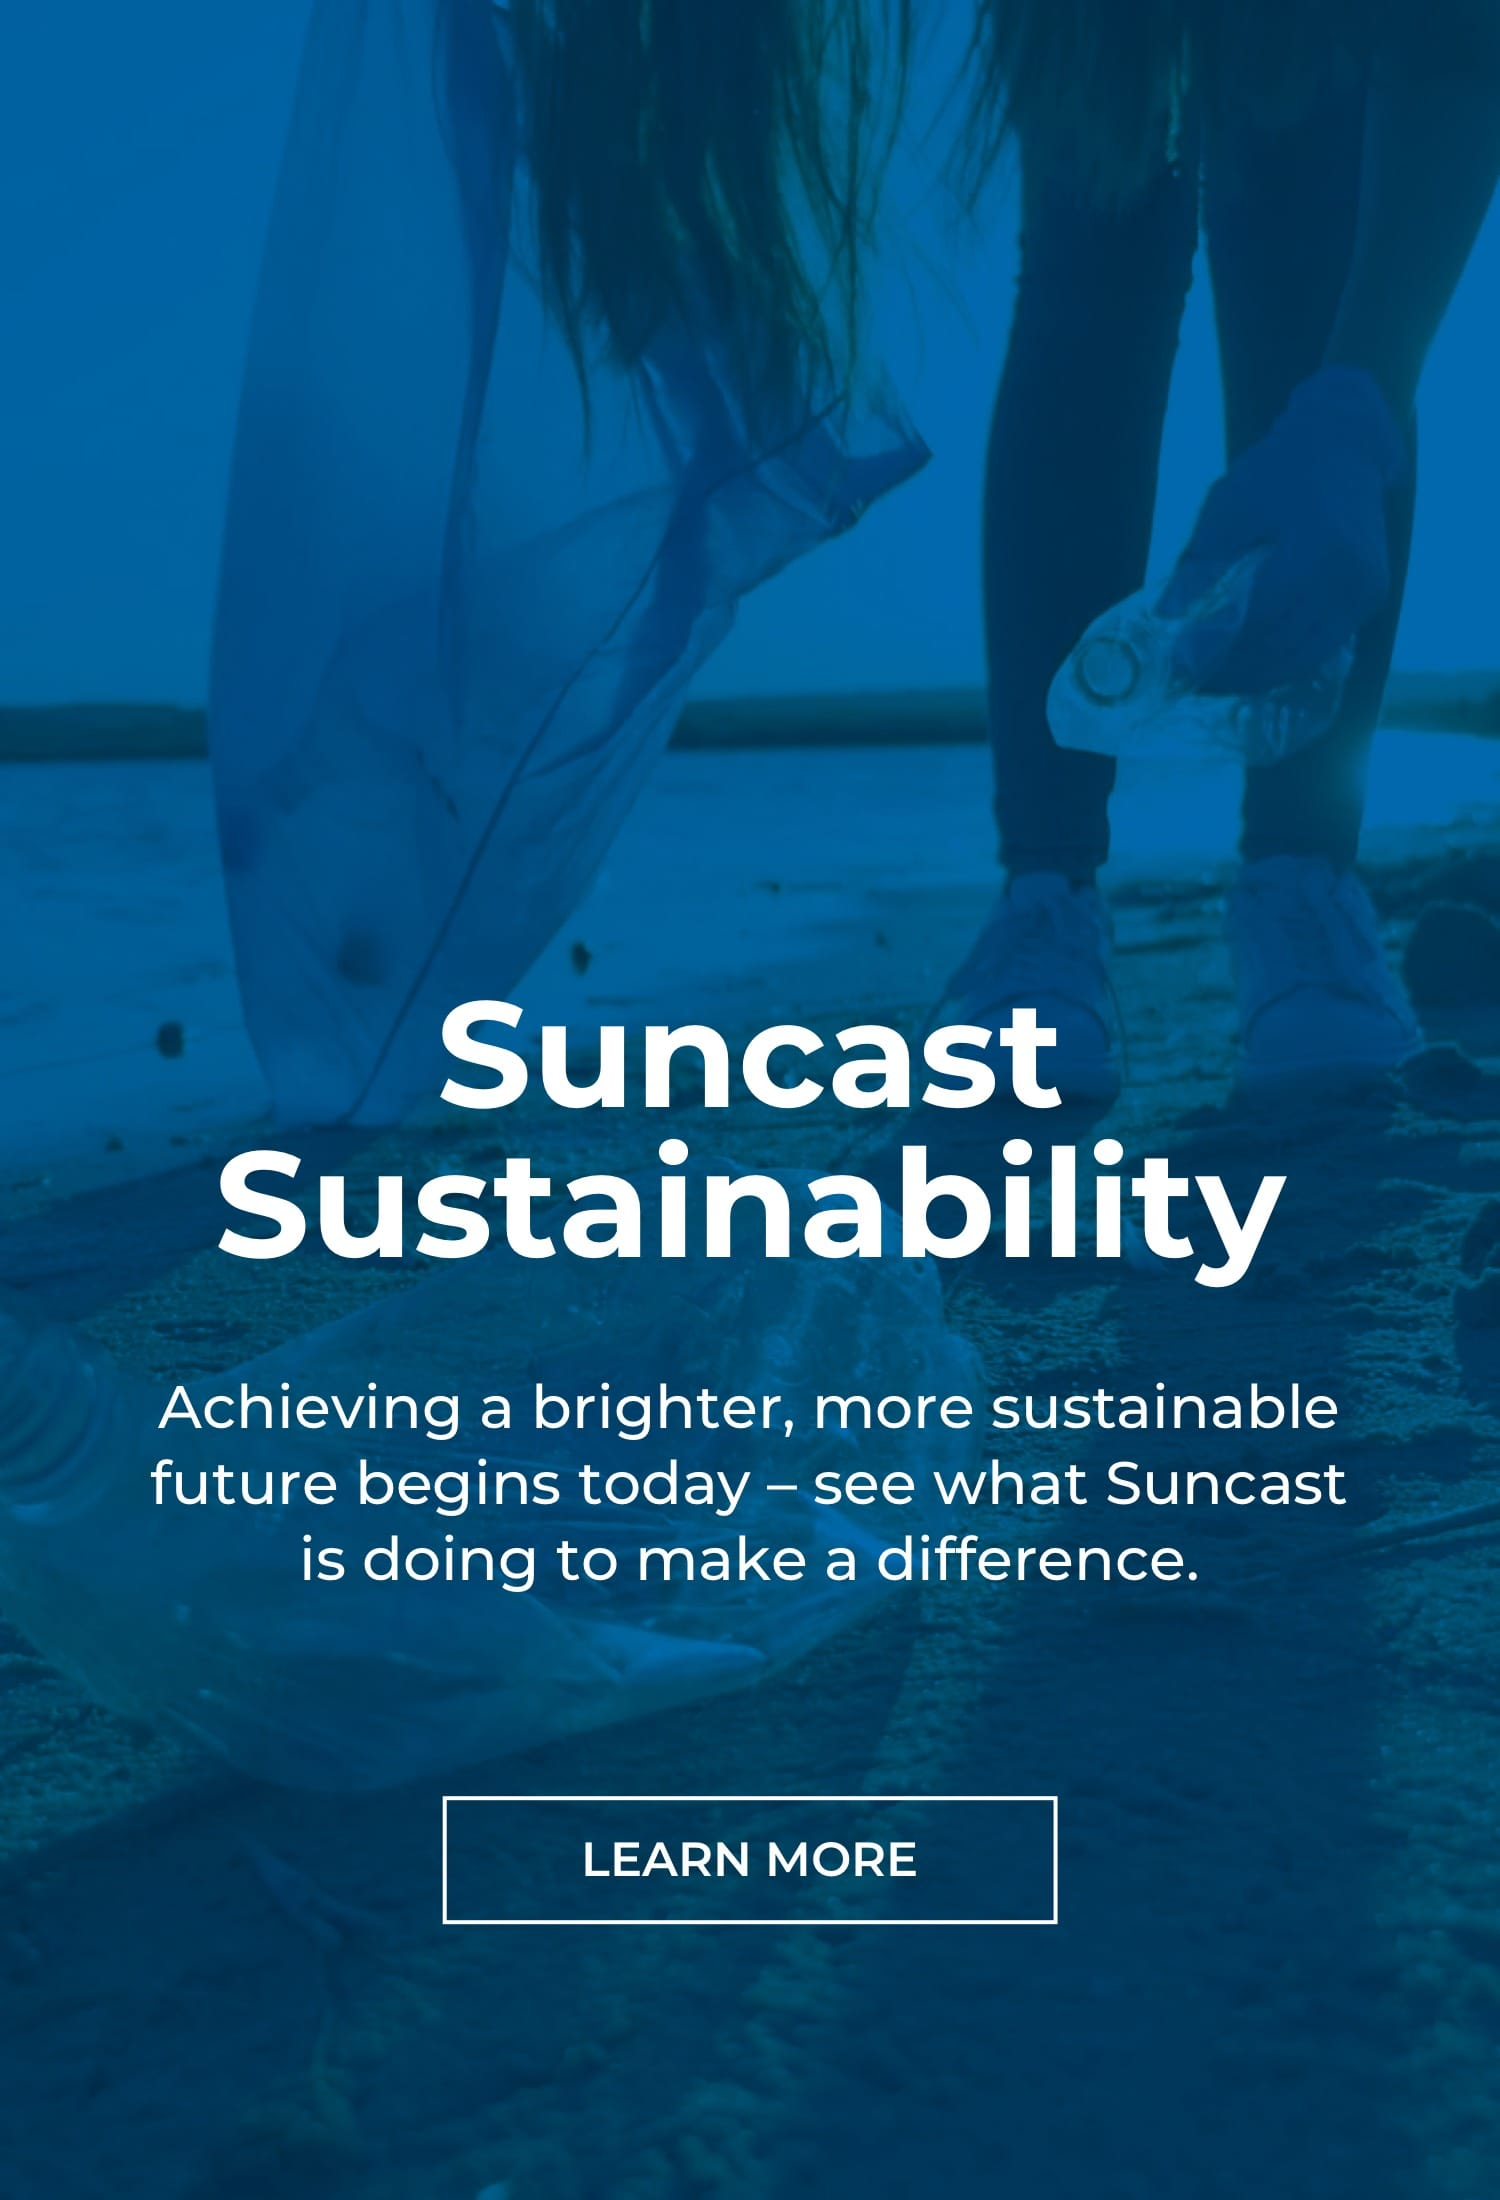 See what Suncast is doing to achieve a brighter, more sustainable future.